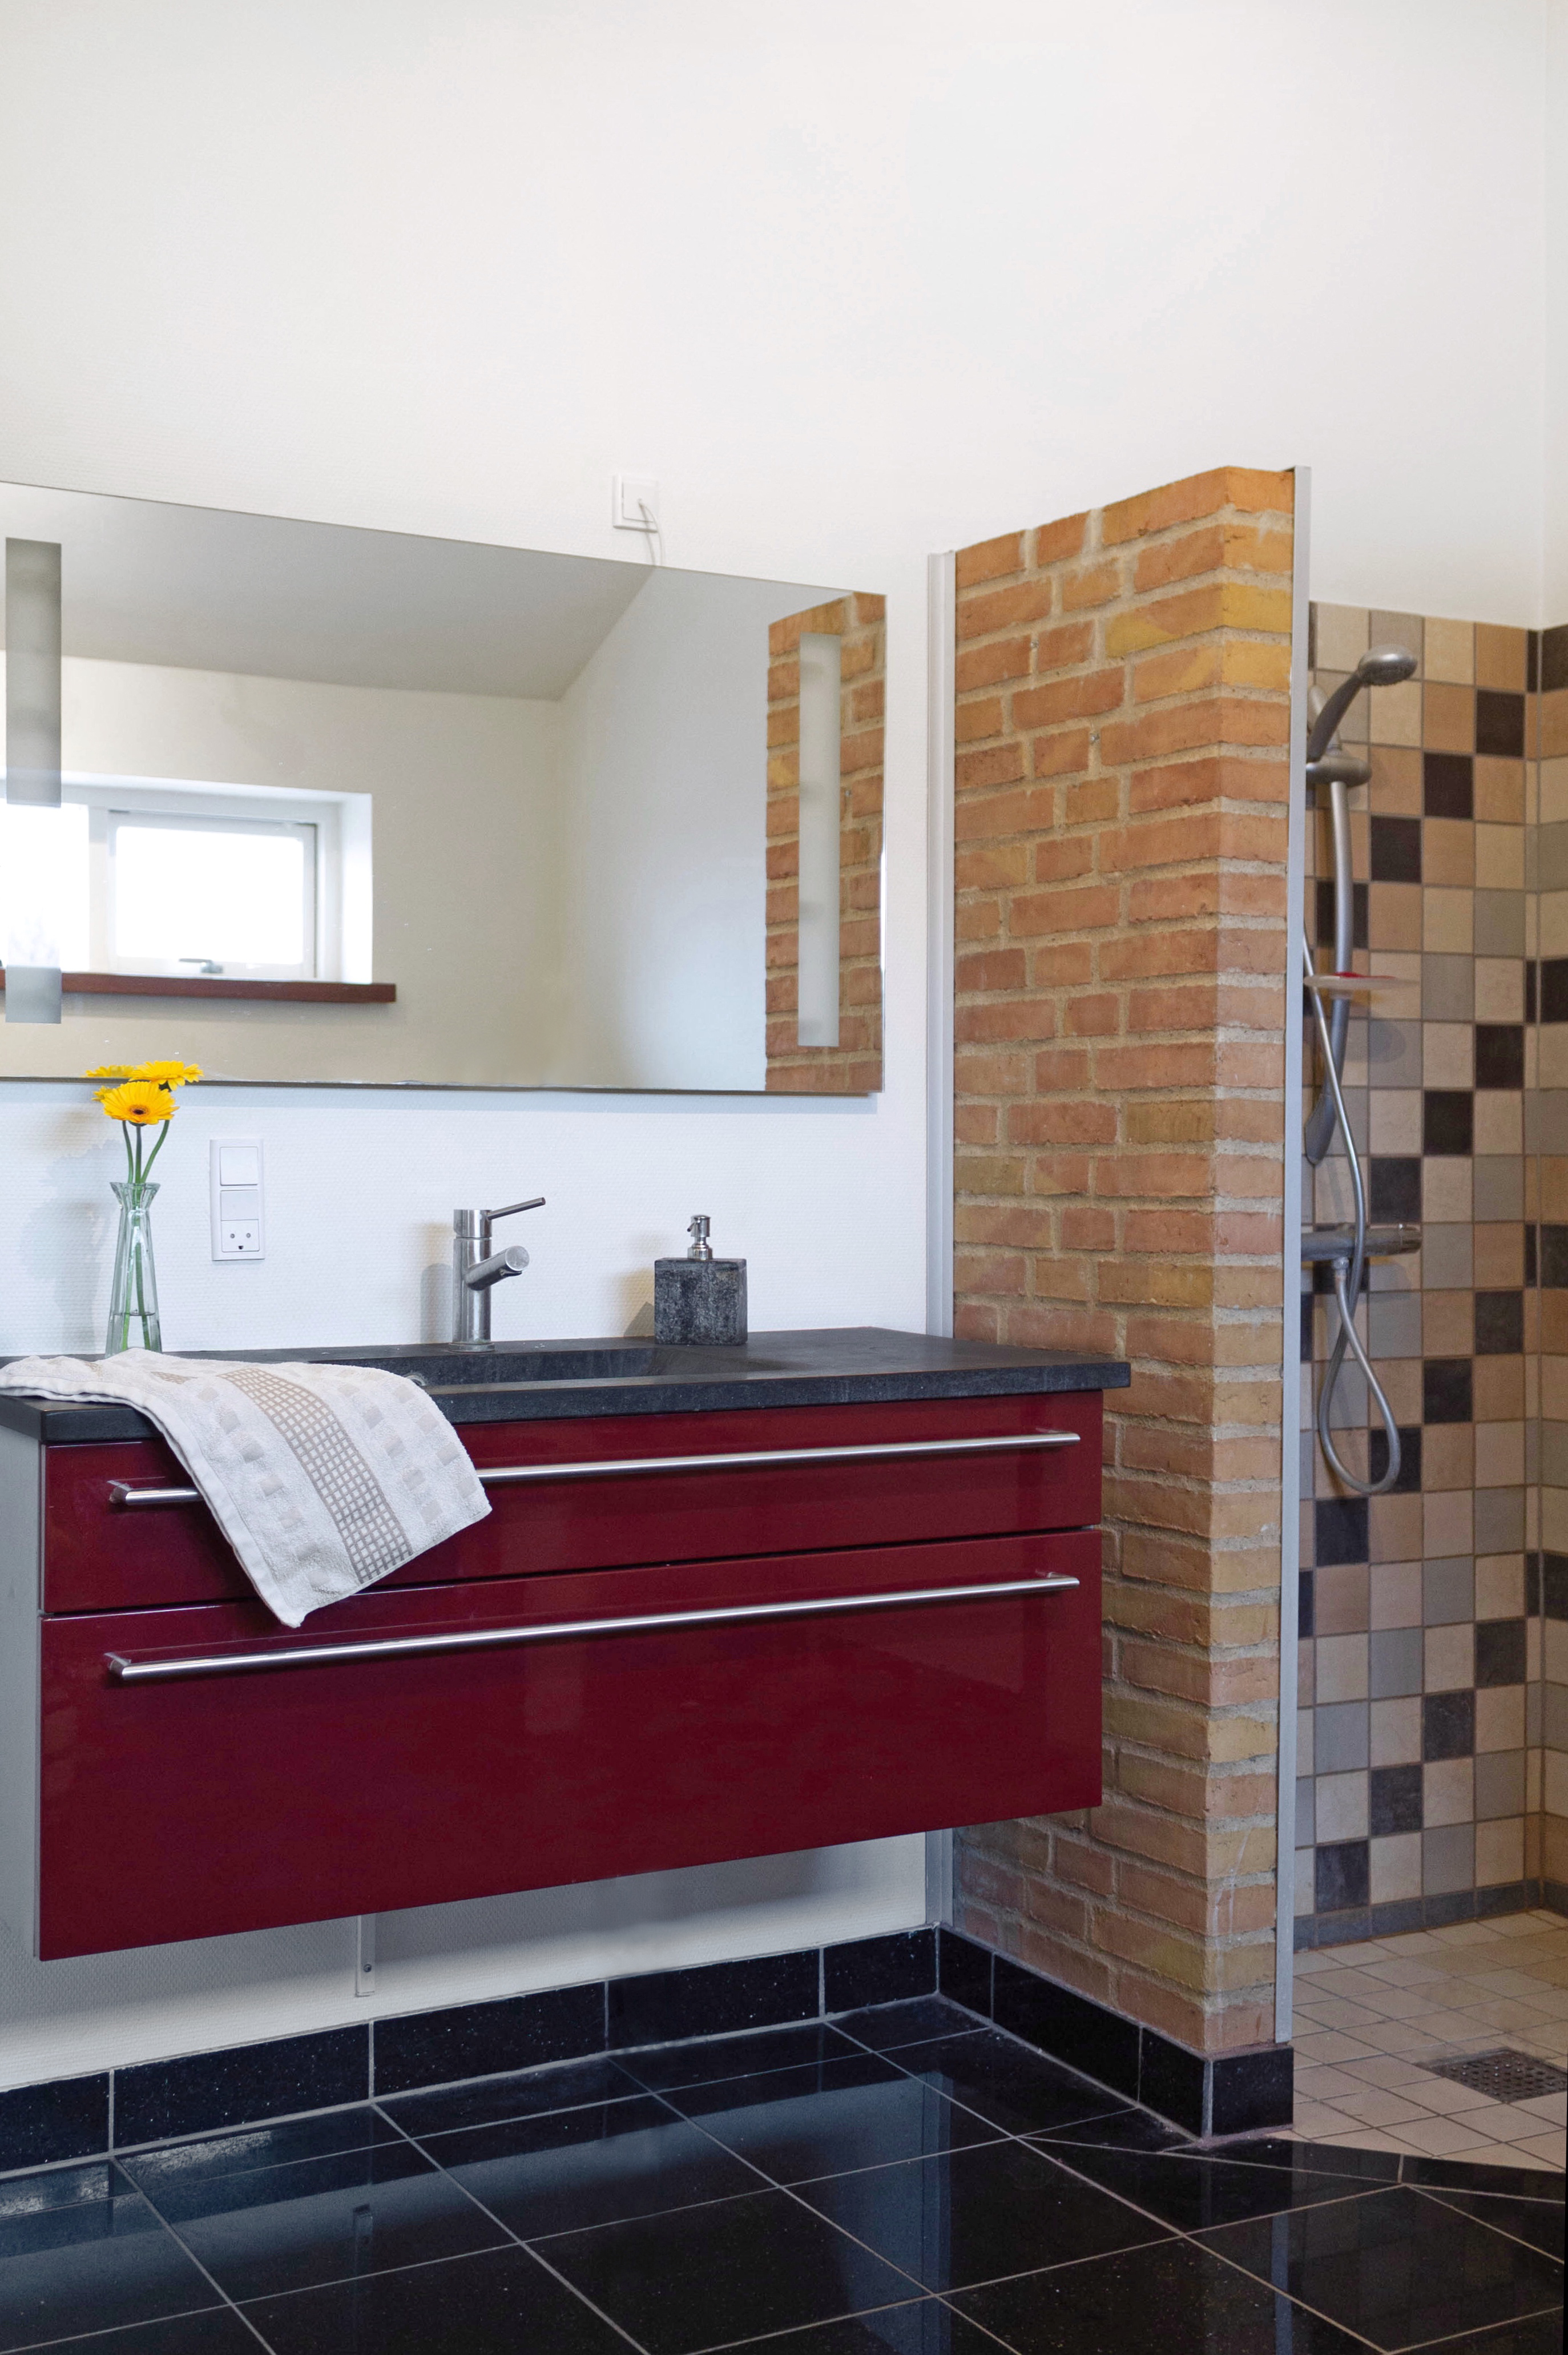 @lacasadefreja's cover photo for 'Our master bathroom - La casa de Freja'